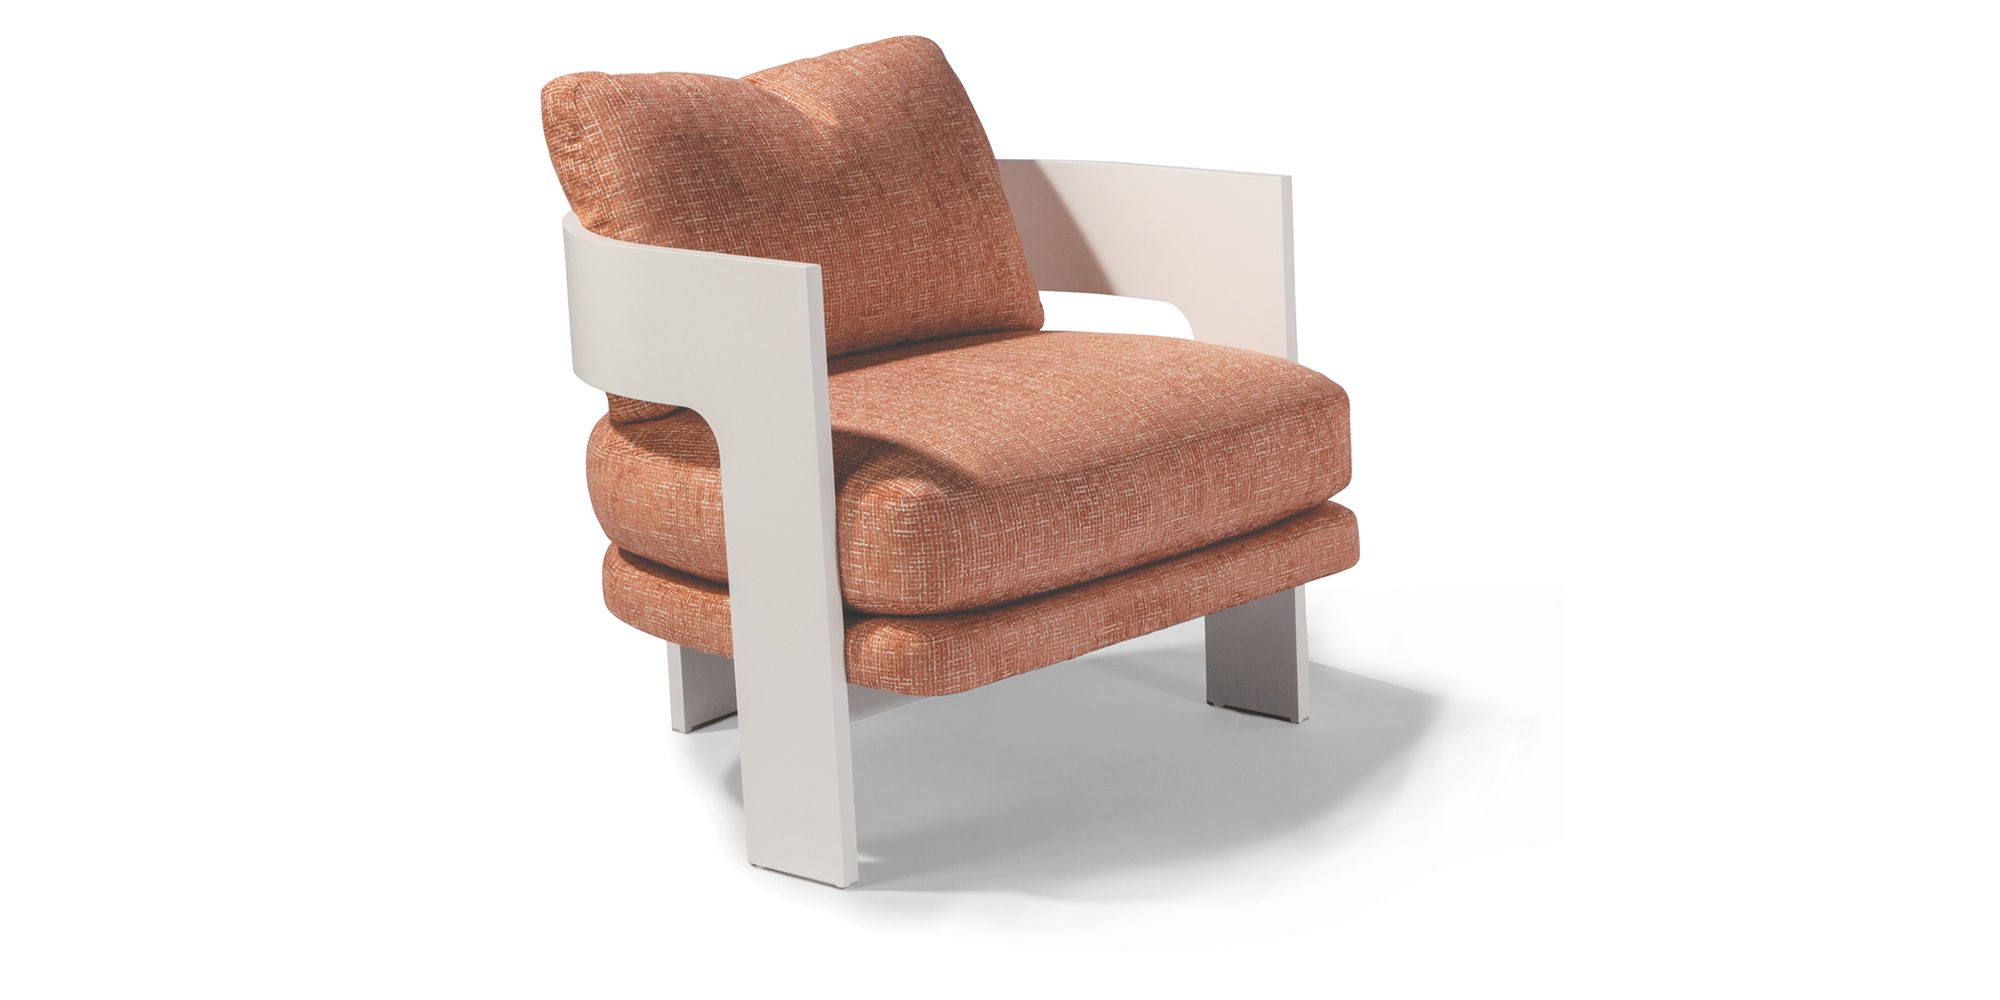 On 3 Lounge Chair (Maple)